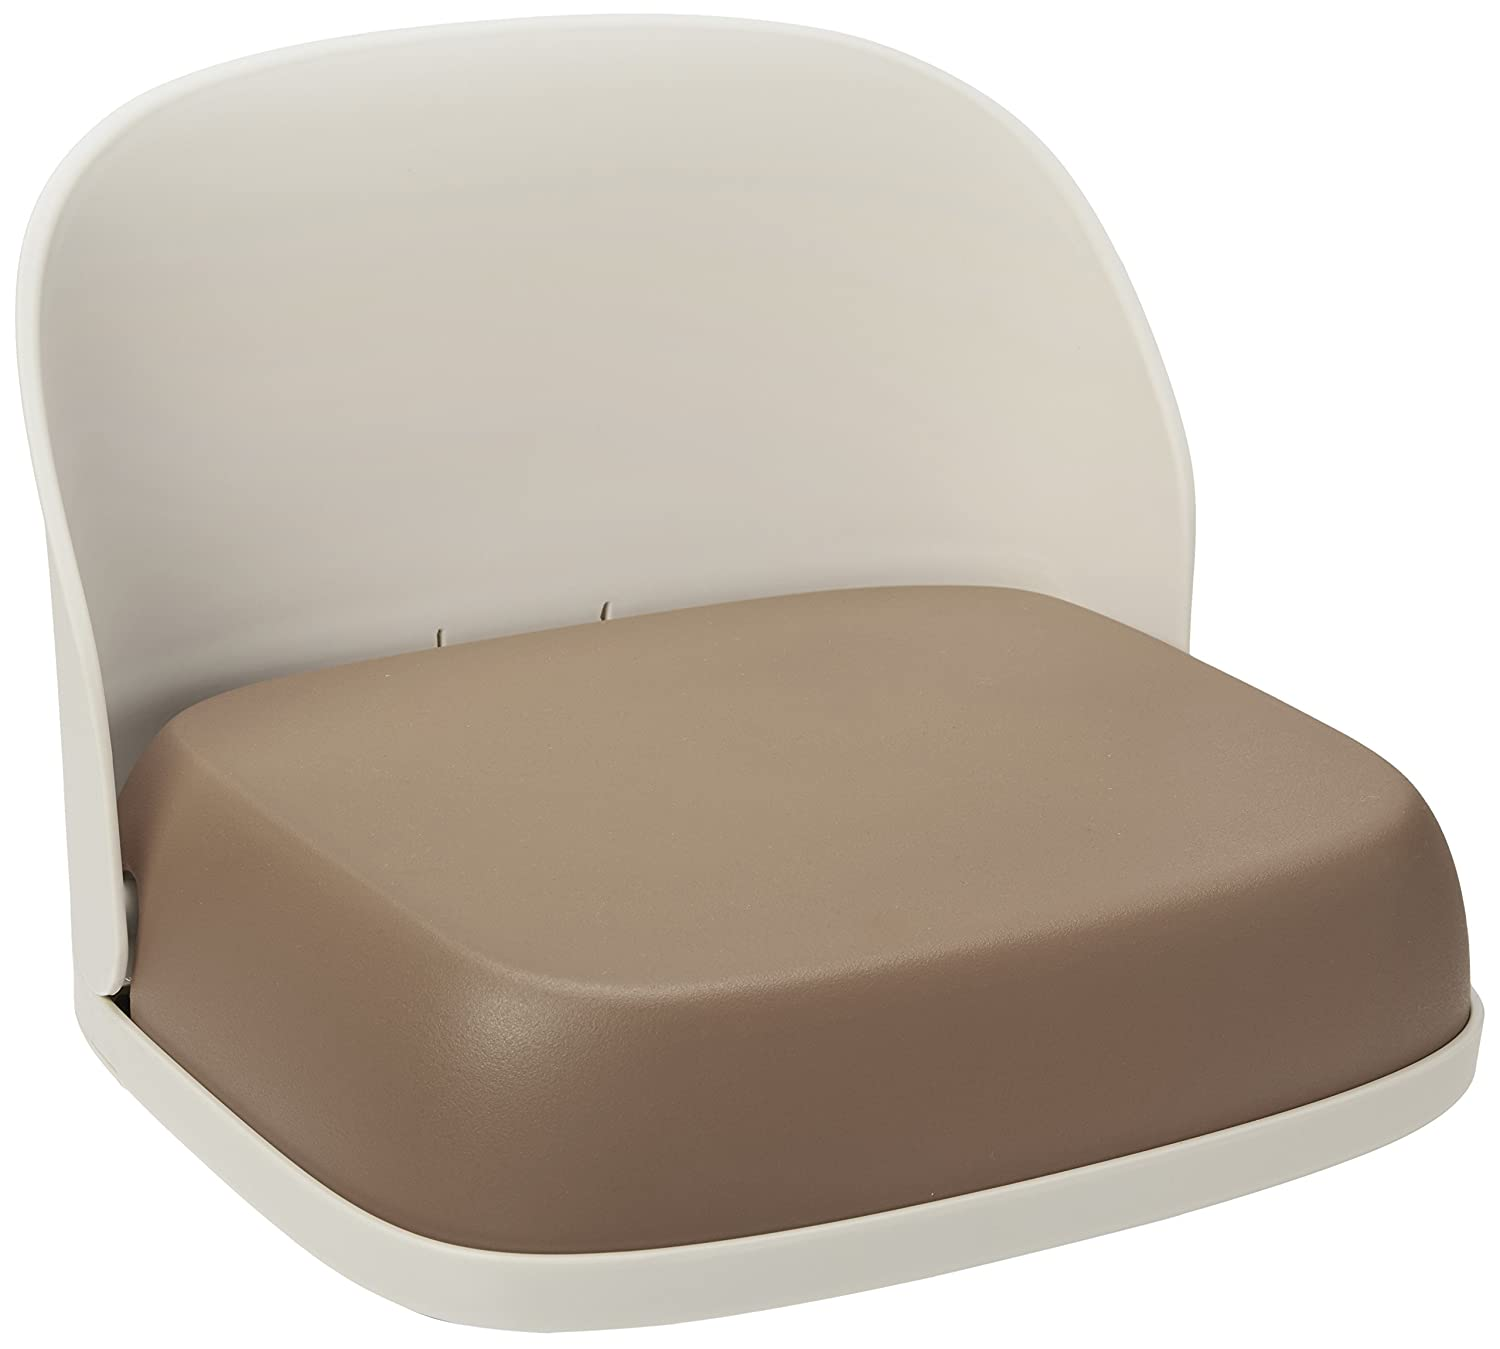 Amazon.com : OXO Tot Perch Foldable Booster Seat for Big Kids- Taupe ...